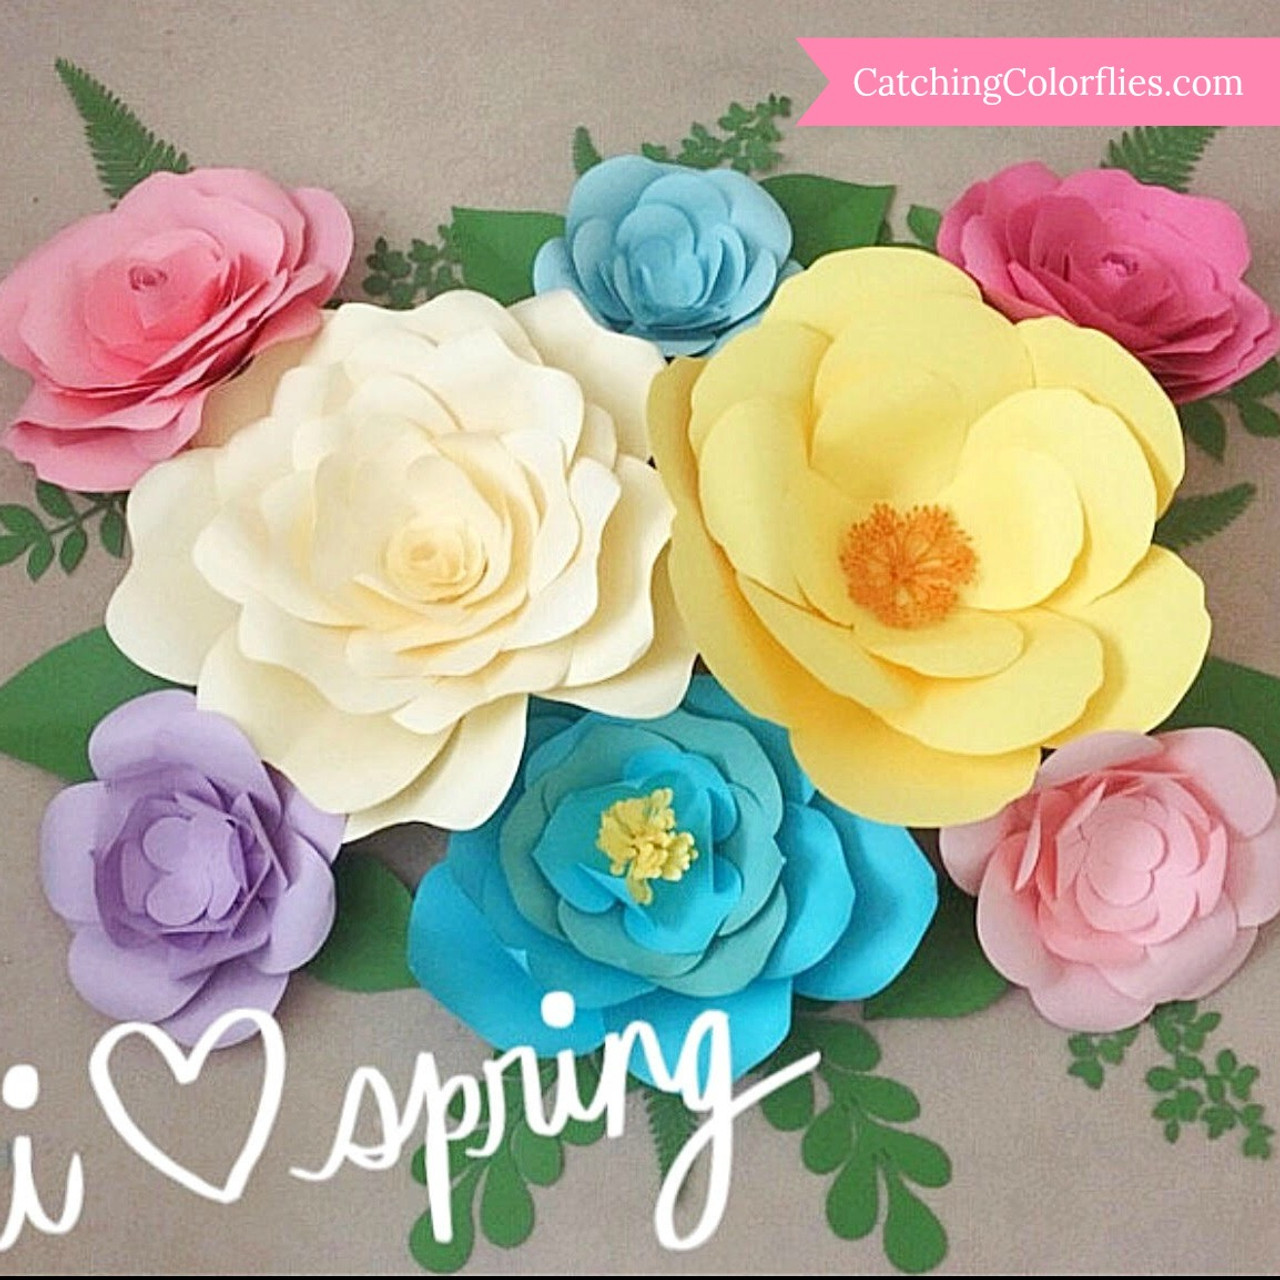 Springtime Set Of Large Paper Flower Templates Catching Colorflies